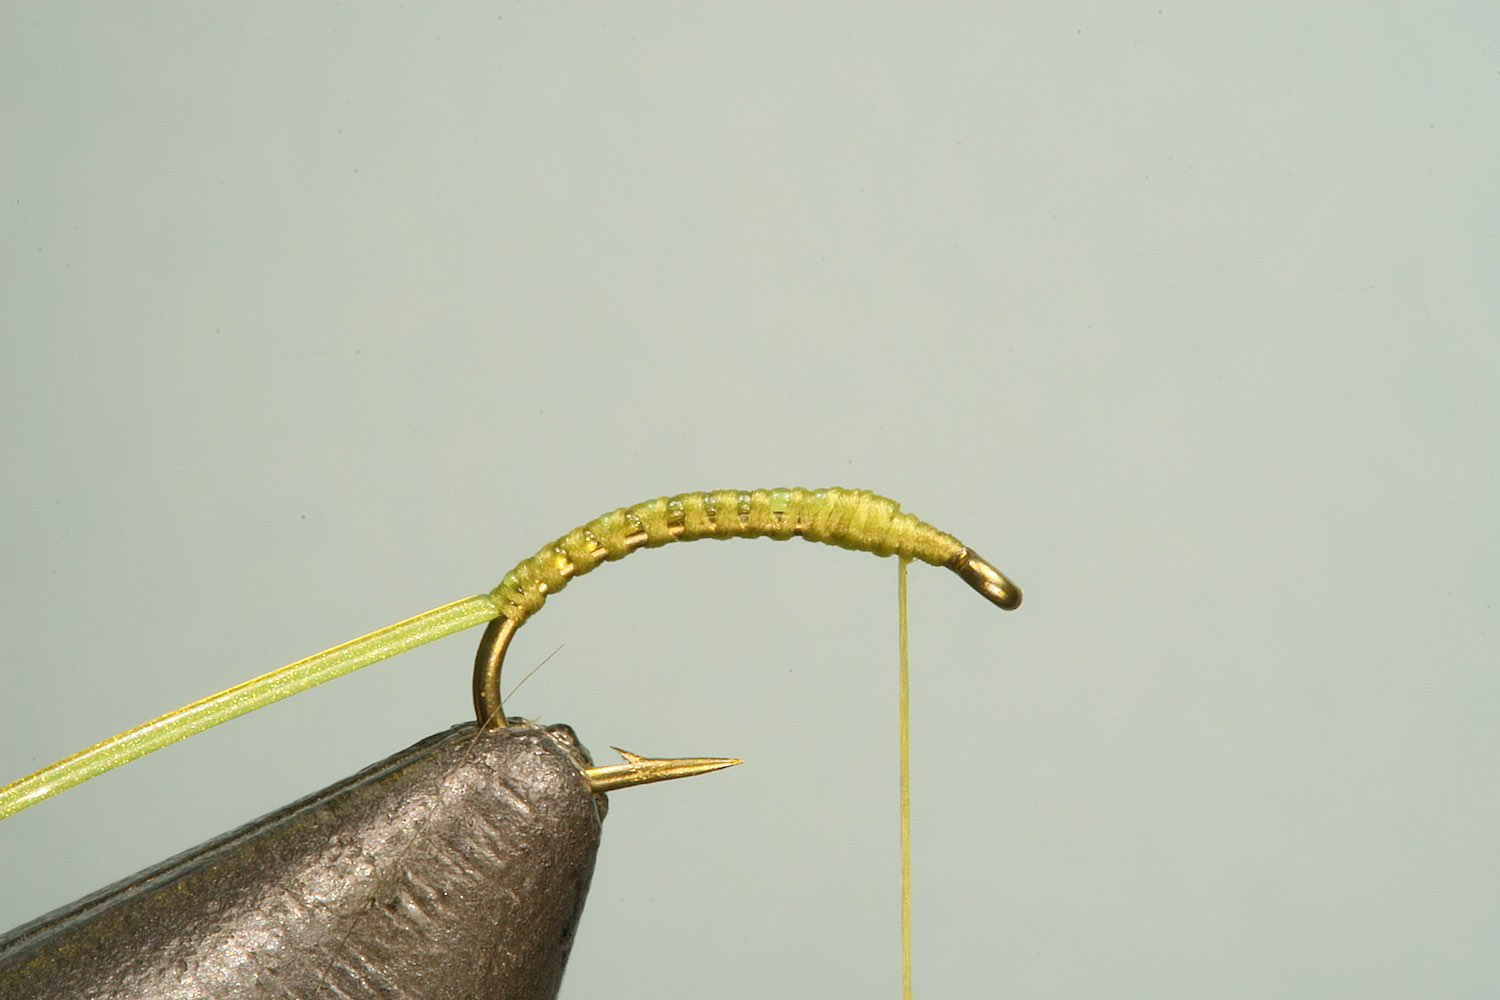 Step 1 of tying sequence for jelly bloodworm fly pattern